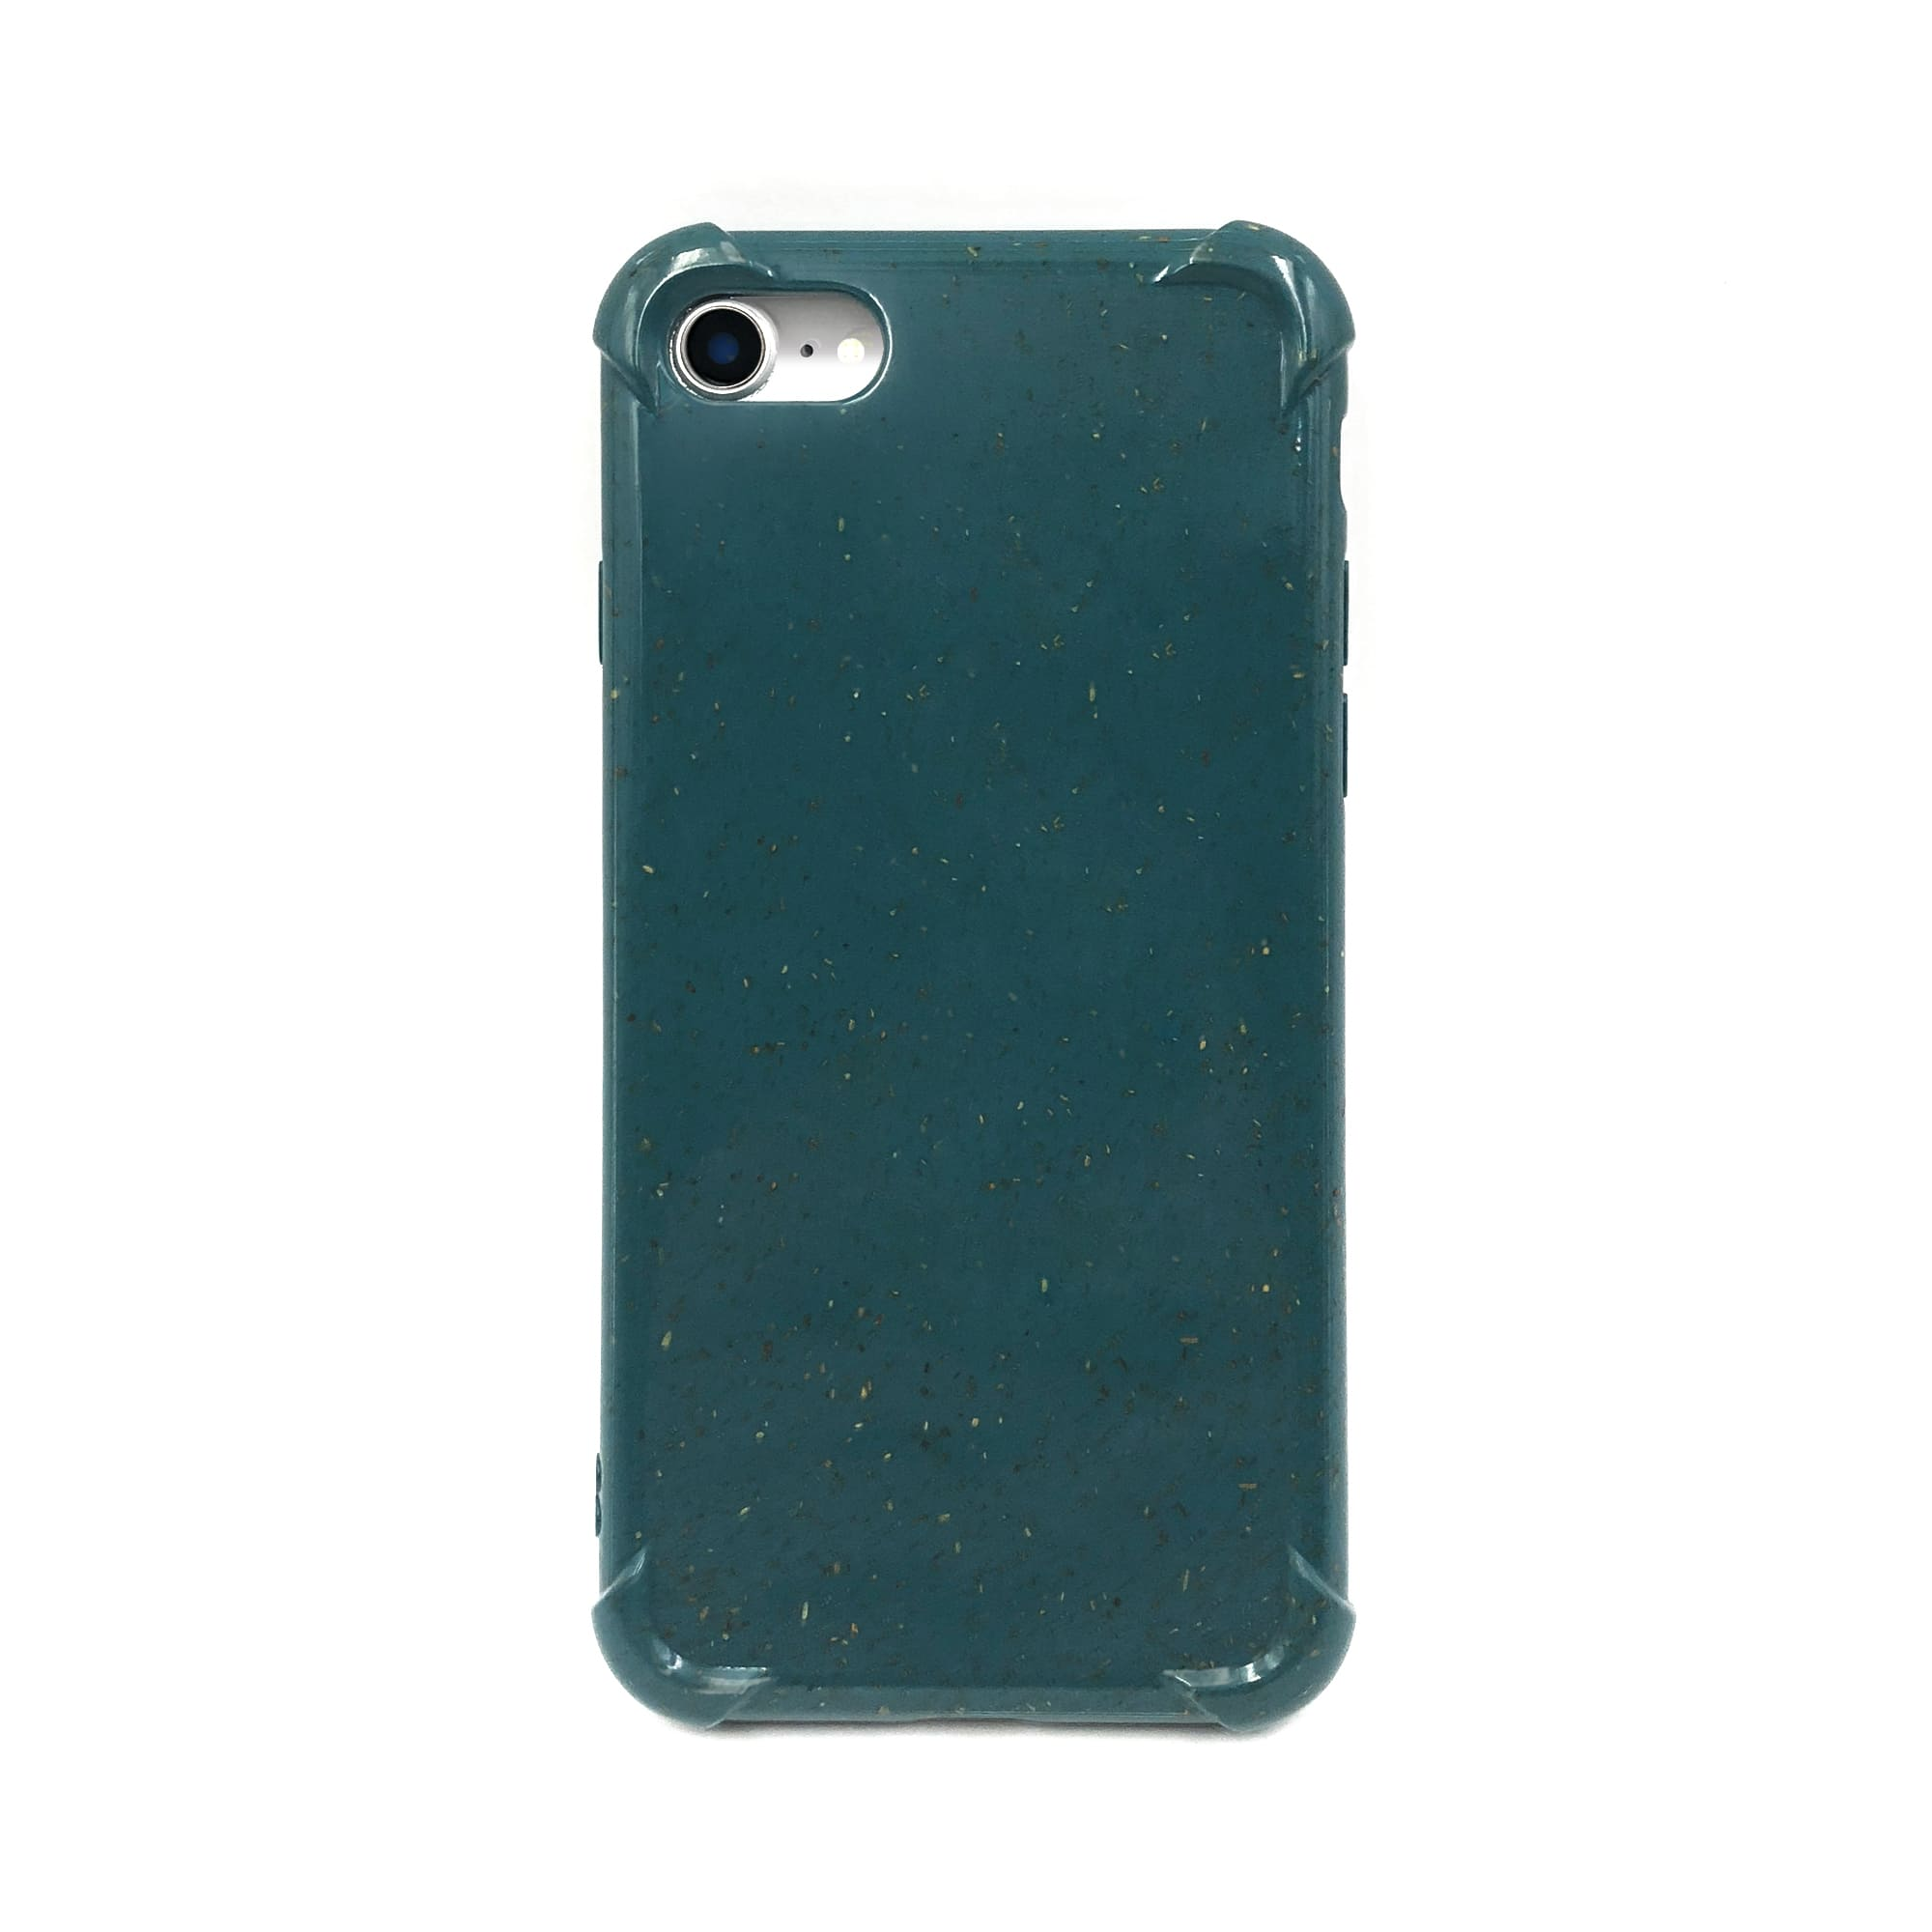 TenChen Tech-Find Android Phone Covers Phone Case With Bumper From Tenchen Tech